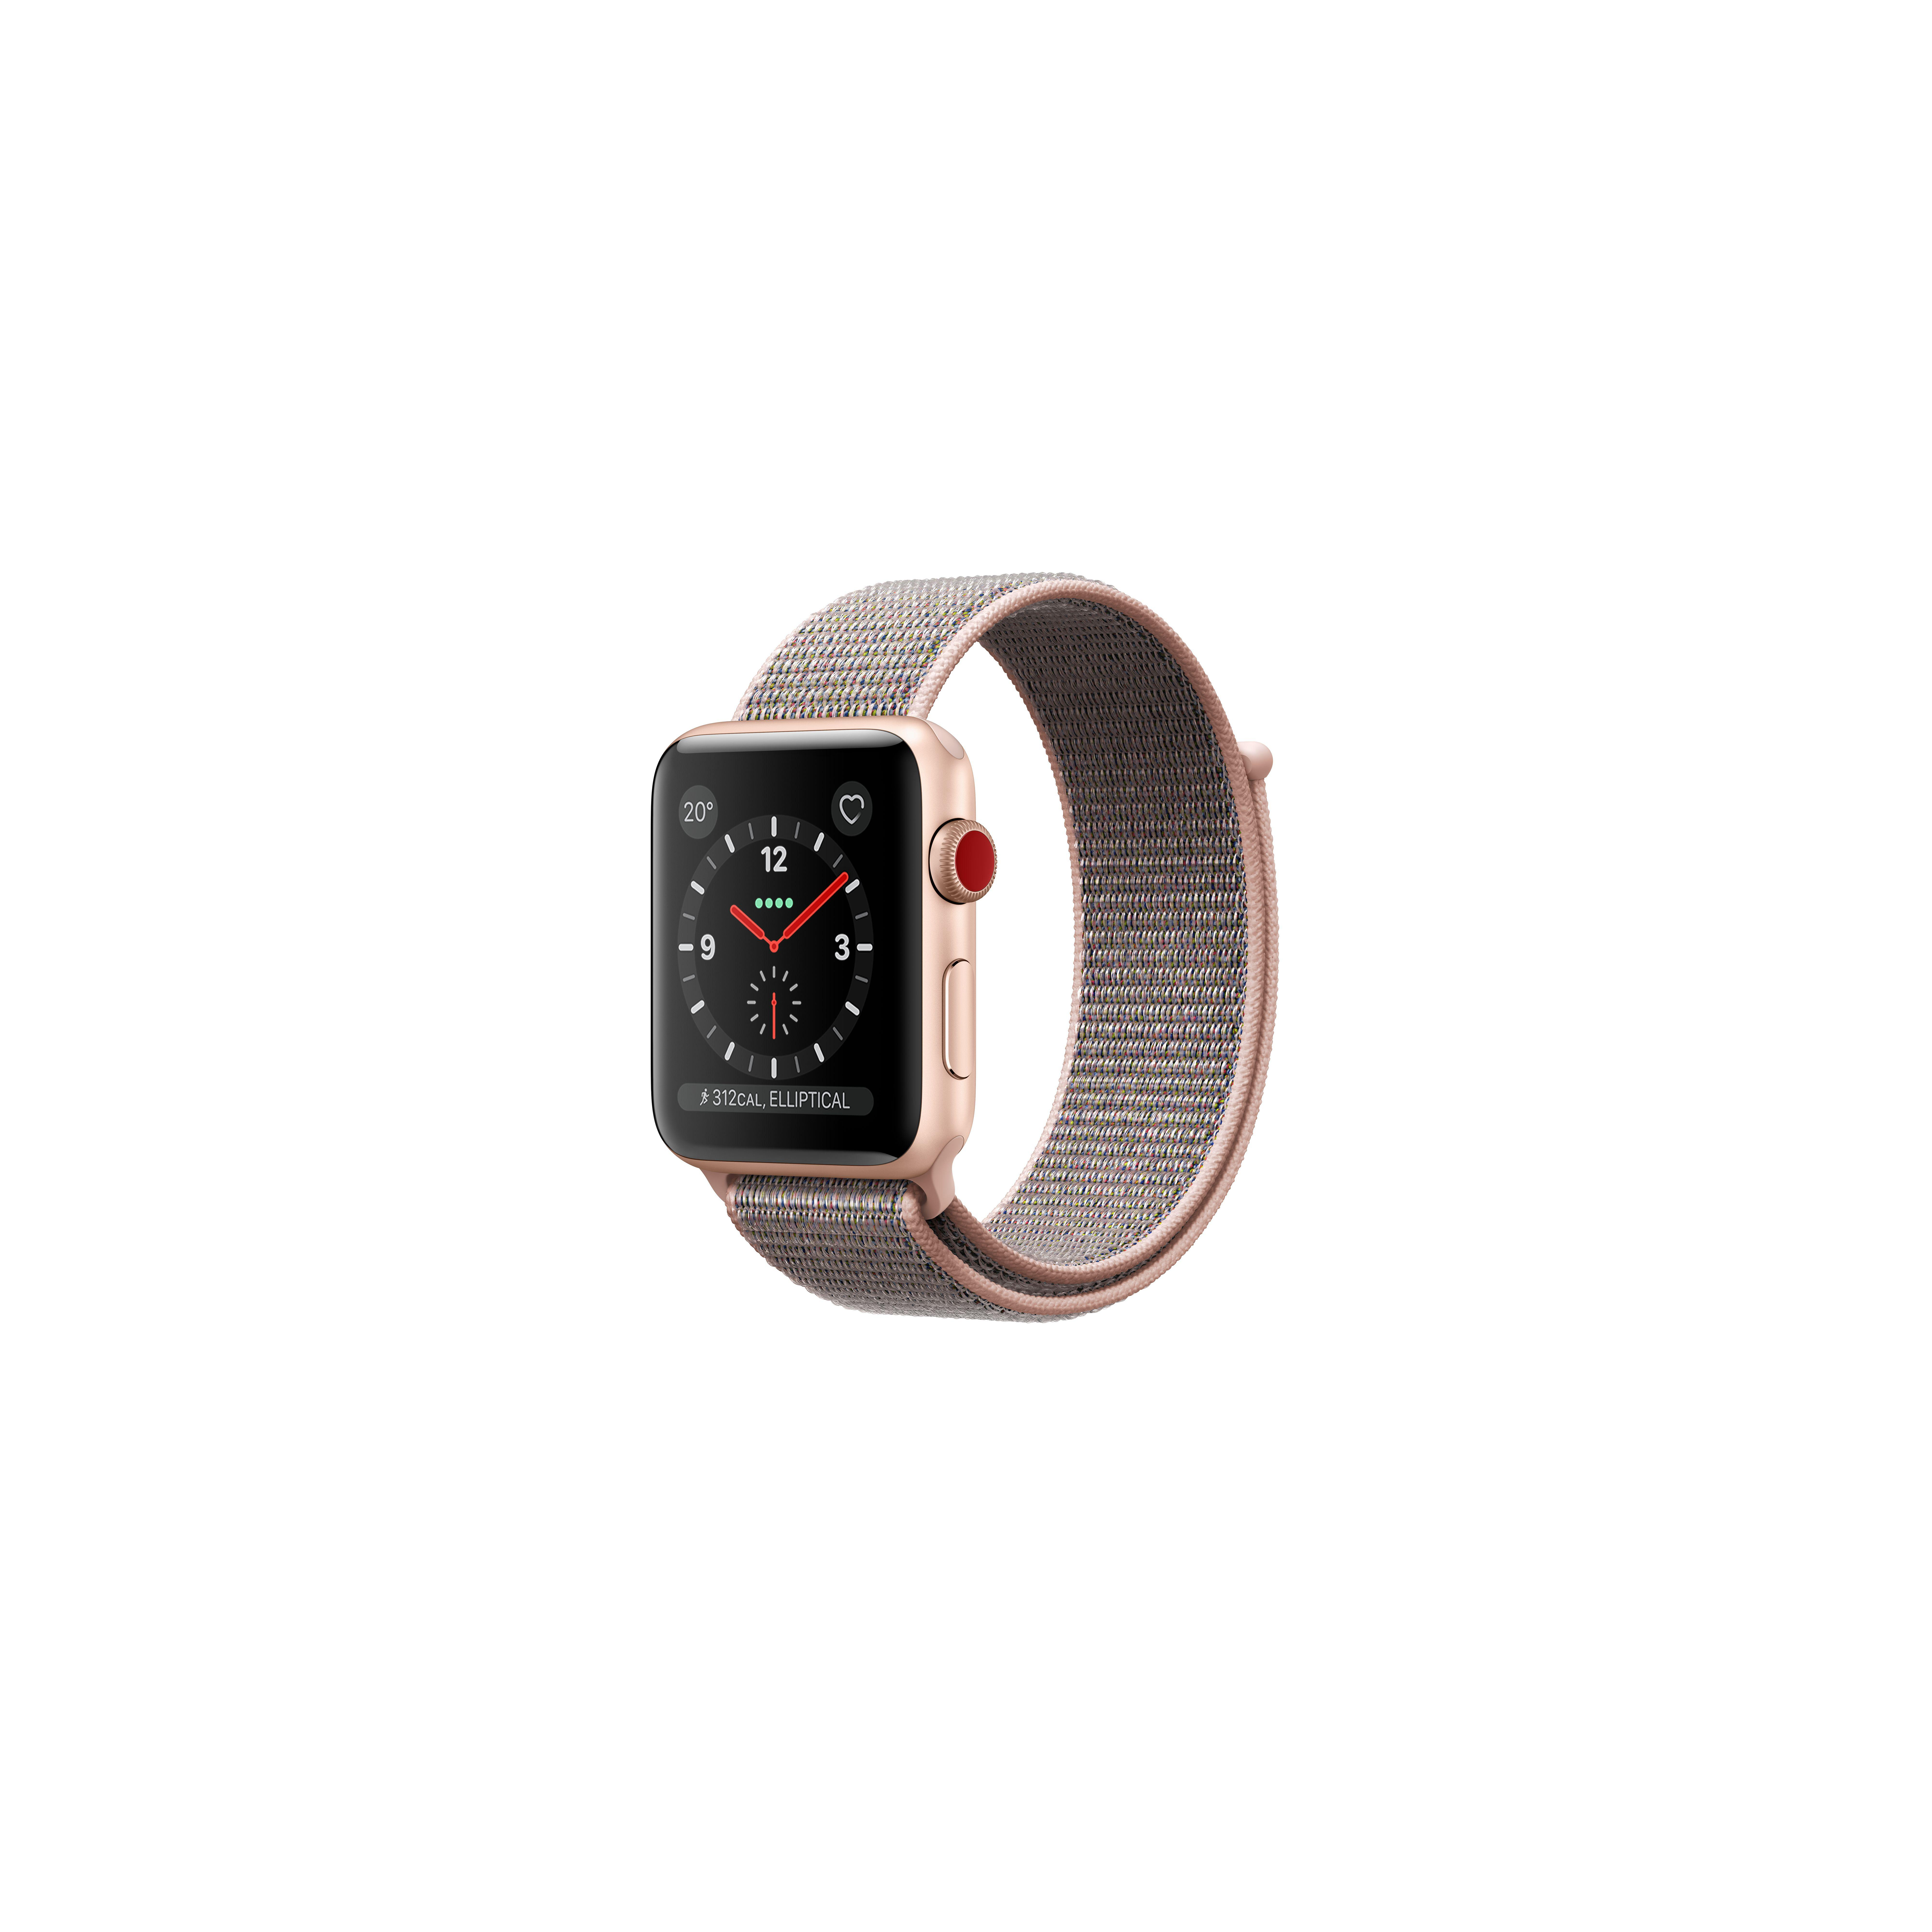 Apple Watch Series 3 Gps Cellular 38mm Gold Aluminum Case With